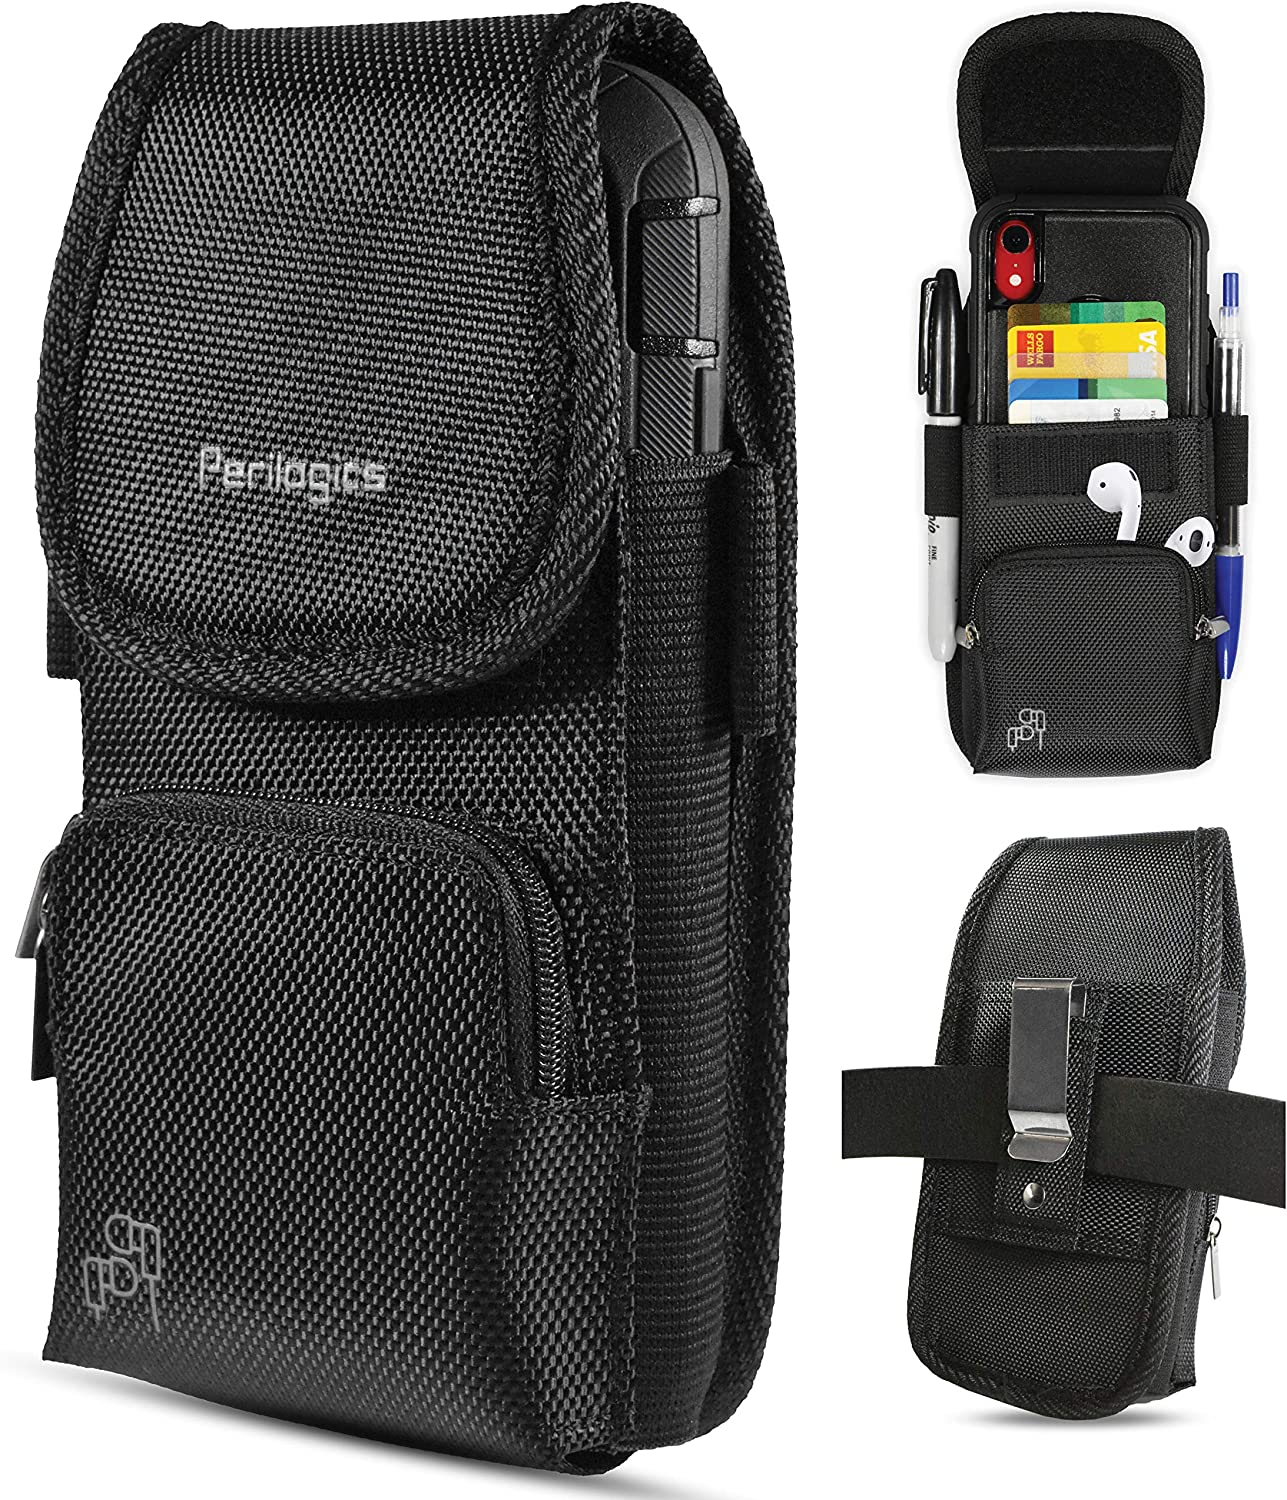 Nylon Cell Phone Holster with Magnetic Cover. Belt Clip Pouch for iPhone 12 Pro Max, 12 Pro, 11 Pro Max, 11 Pro, Xs Max, Xr with Rugged Phone Case. Zipper Storage and Credit Card Pocket. (Magnet)